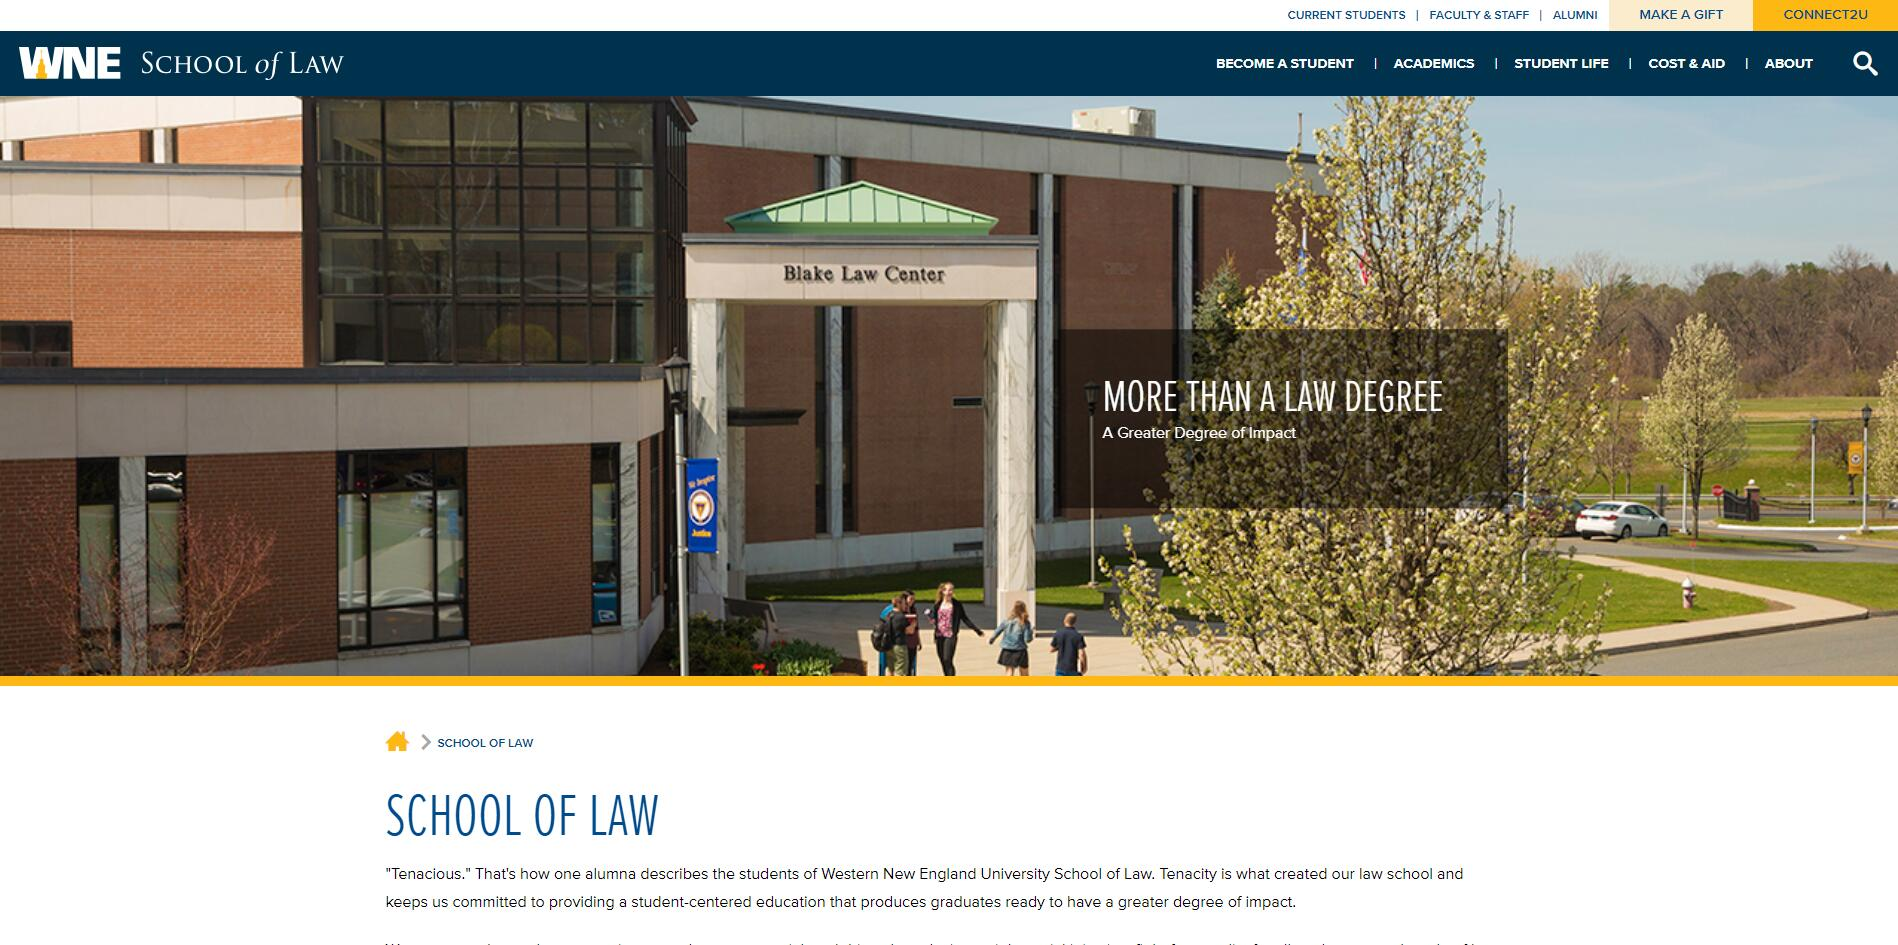 The School of Law at Western New England University